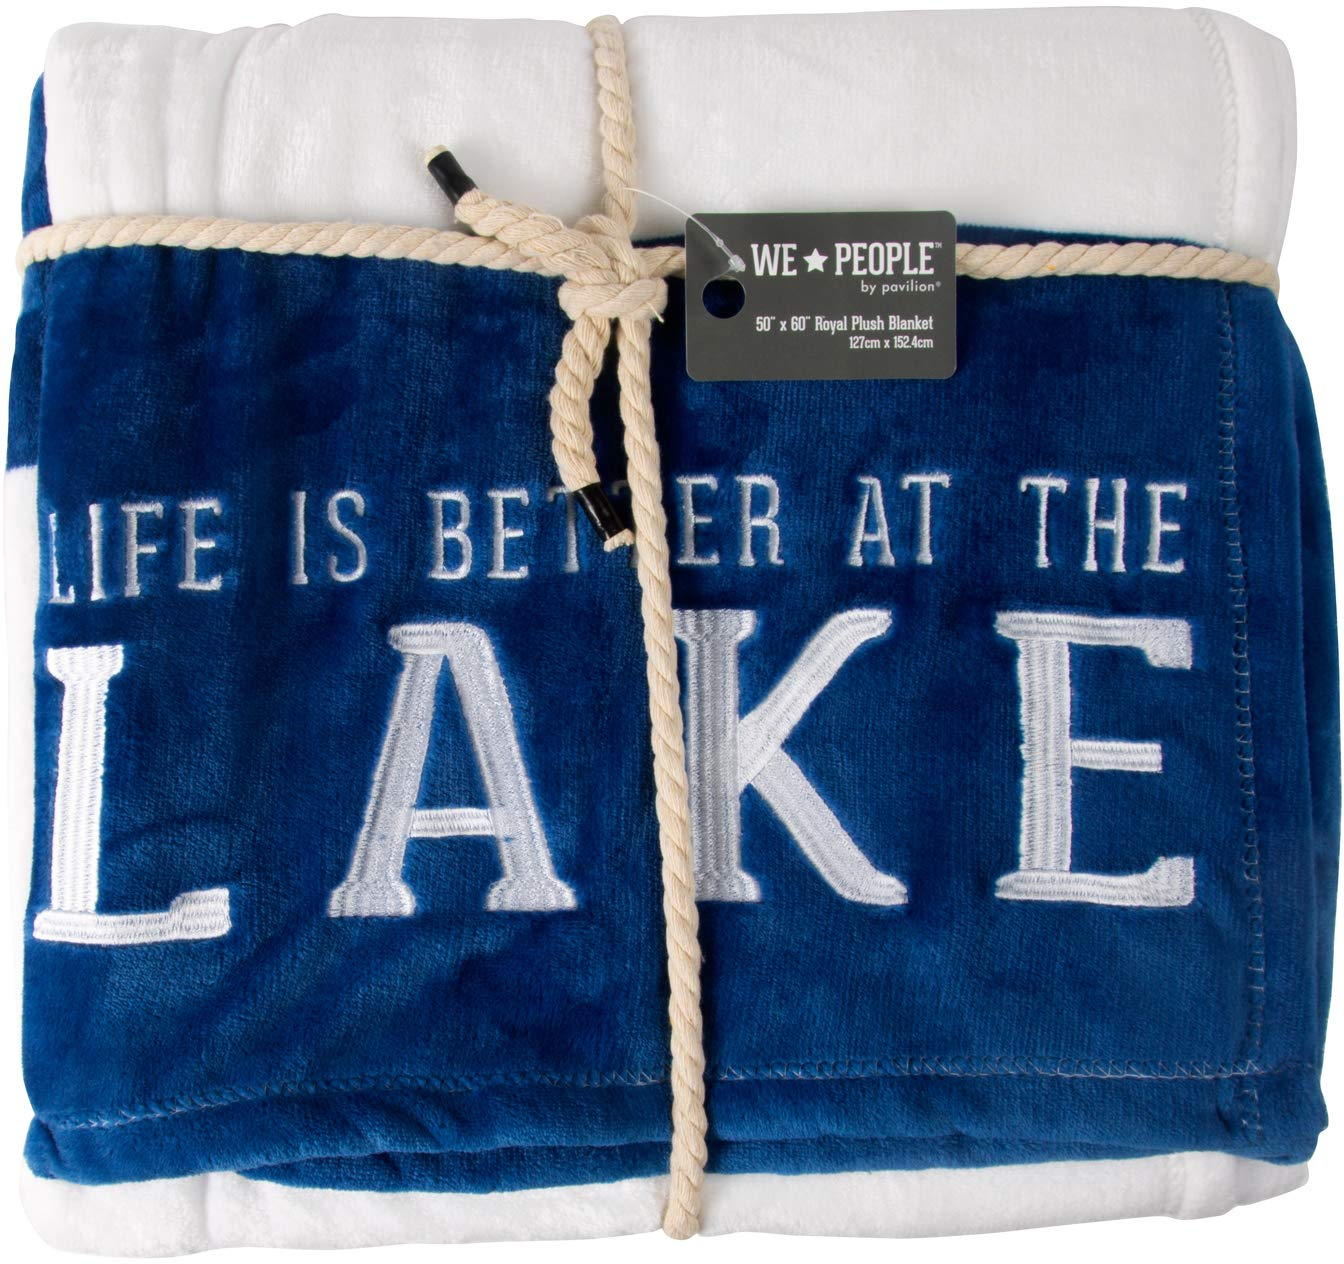 Pavilion Gift Company Life is Better at The Lake White Super Soft Striped Throw Blanket with Embroidered Text 50'' x 60'' Royal Plush, 50 x 60 inch, Blue